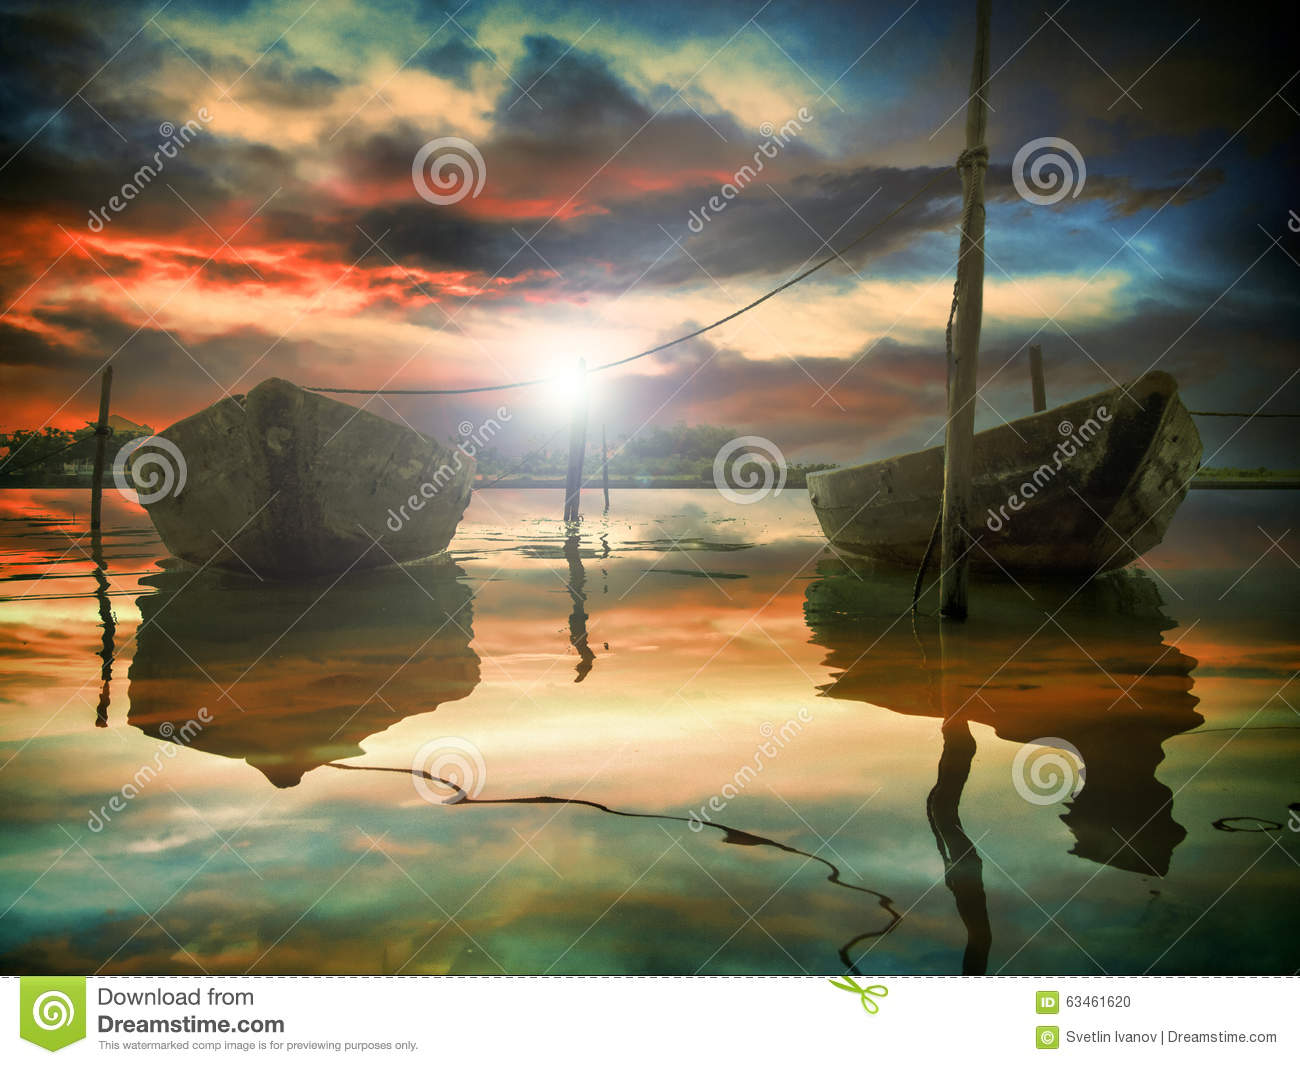 The sunset and two fishing boats